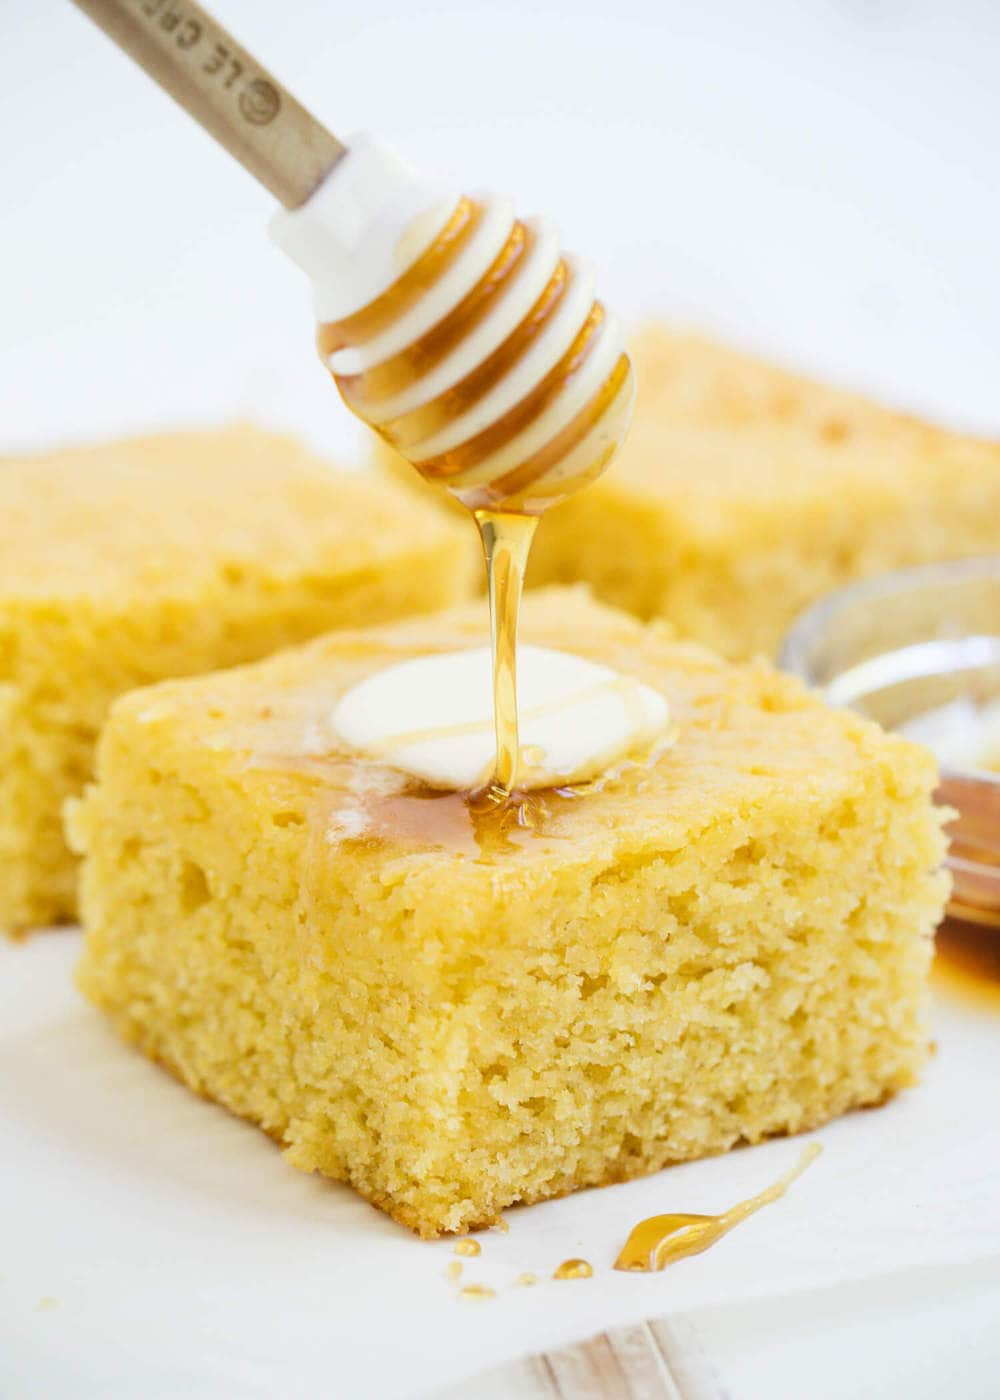 honey wand dripping honey onto a piece of homemade cornbread